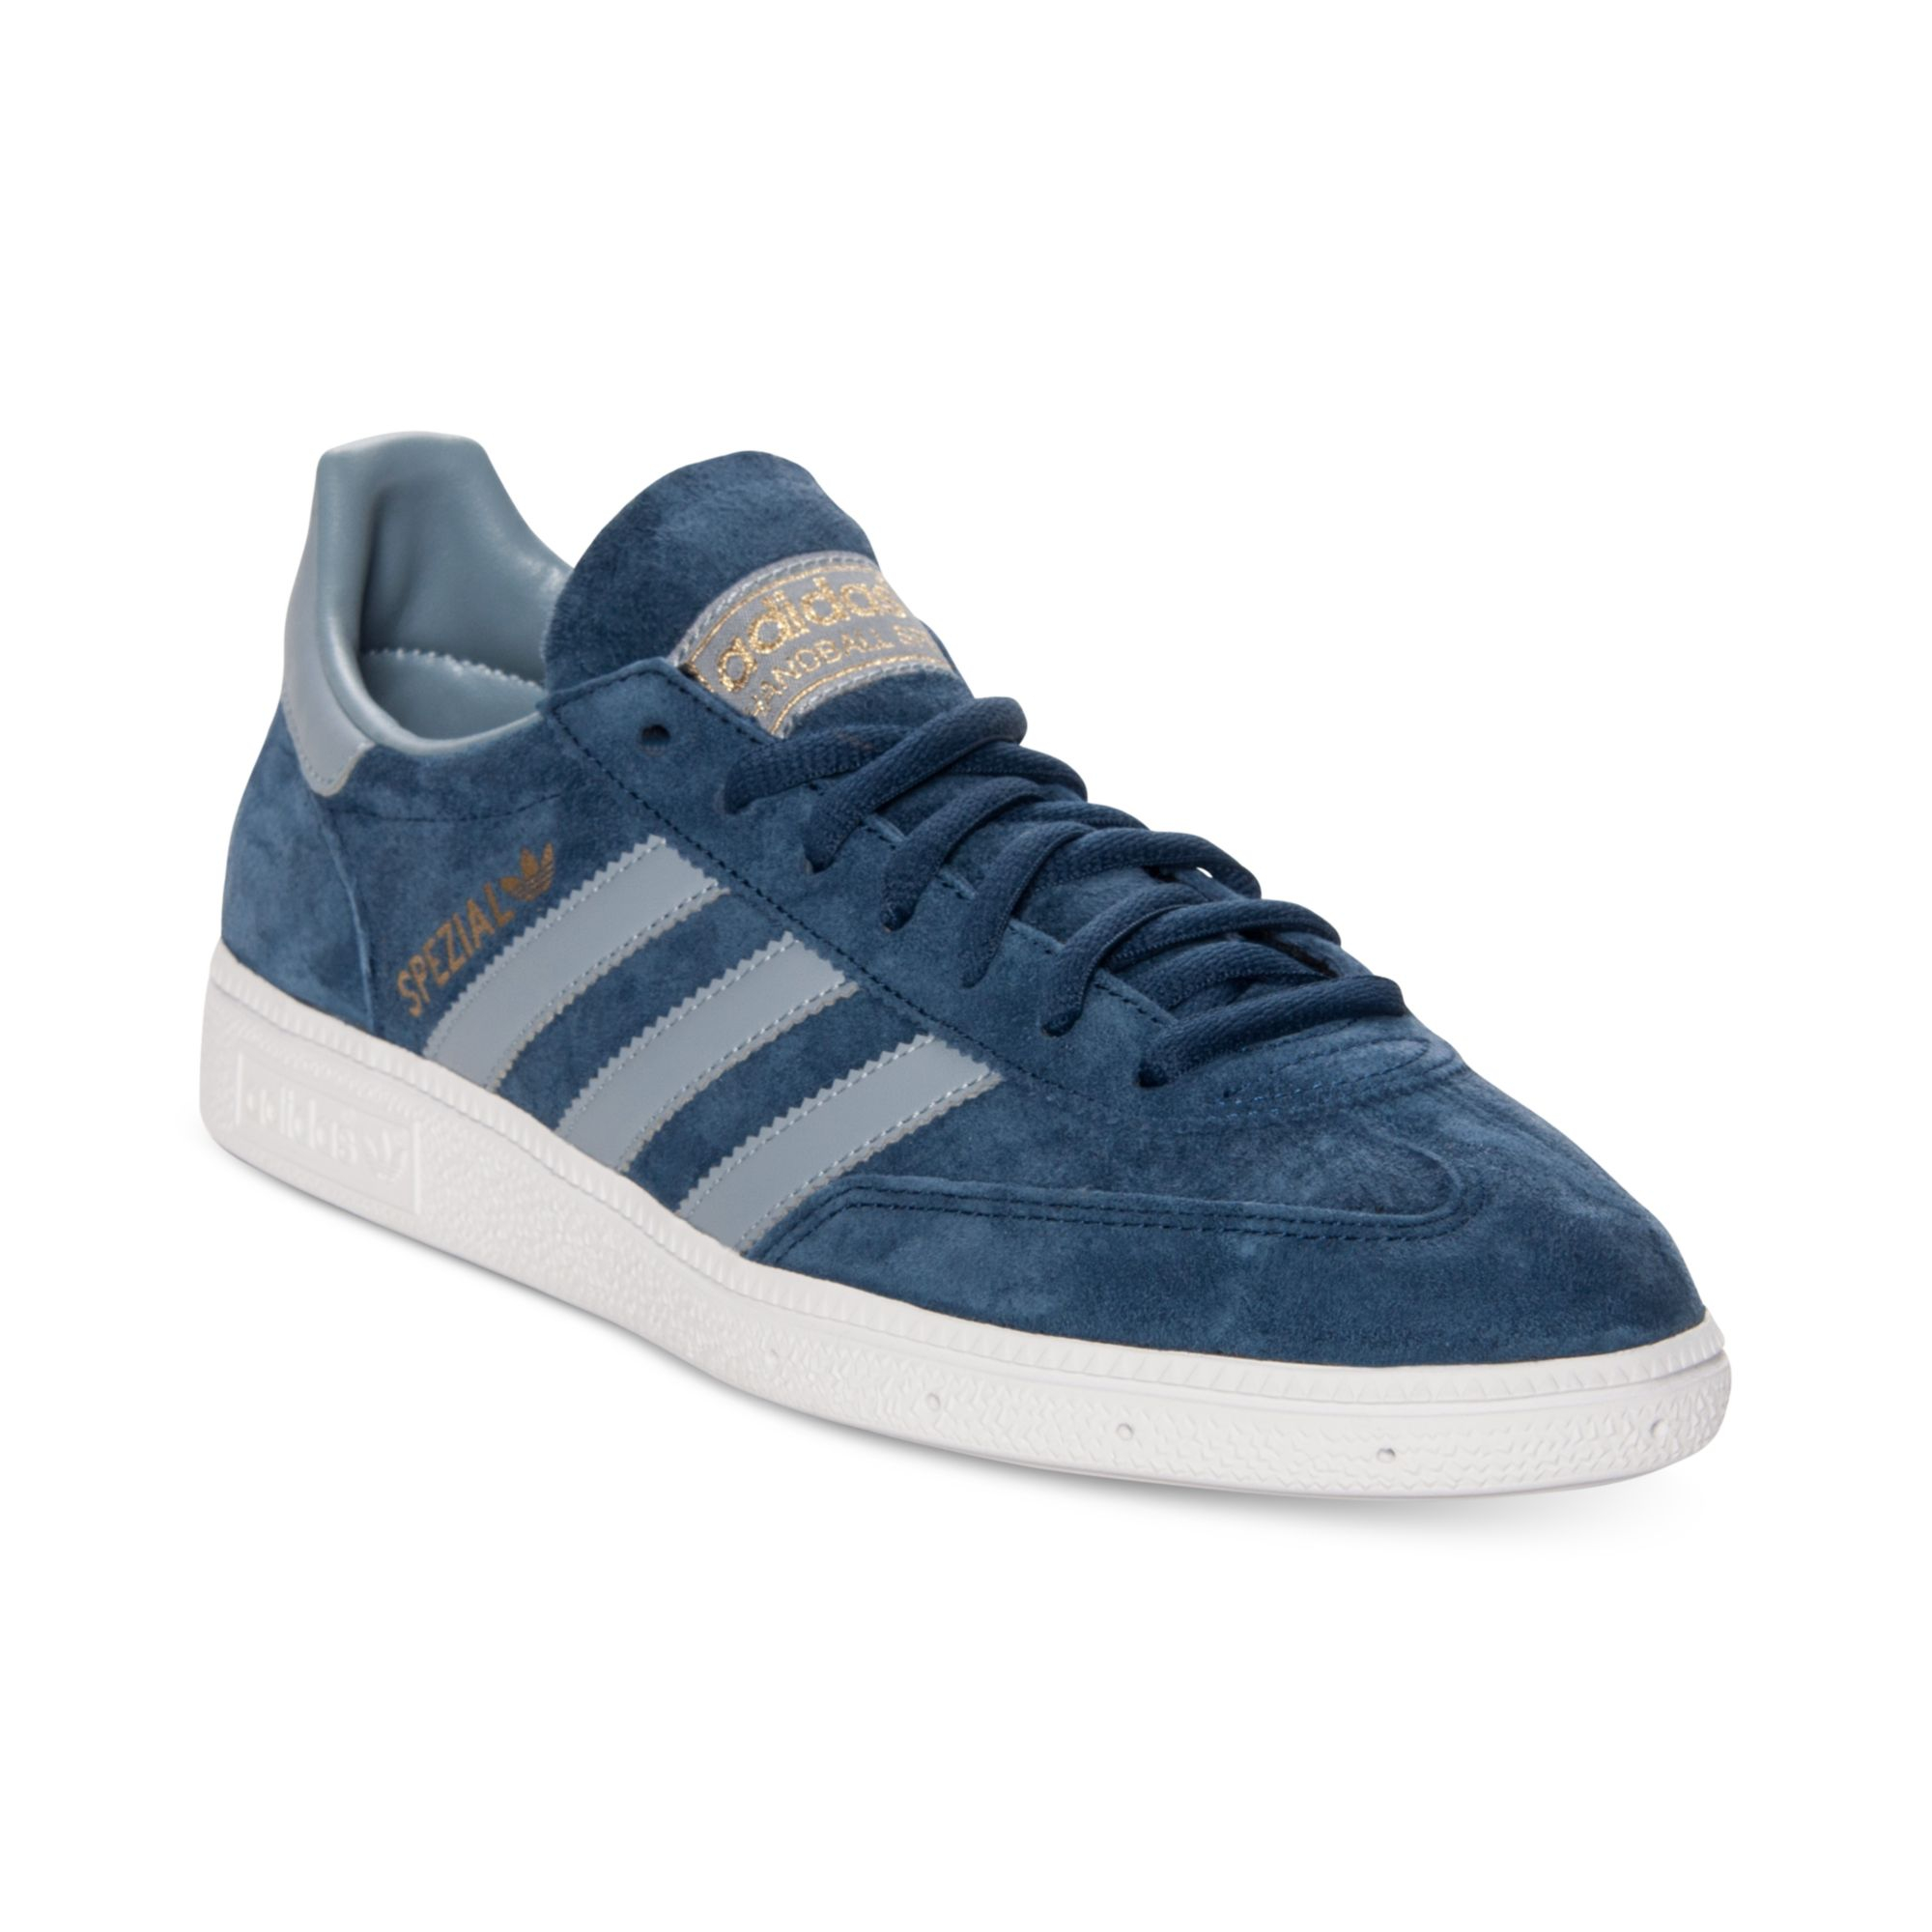 Adidas Spezial Casual Sneakers In Blue For Men Blue Light